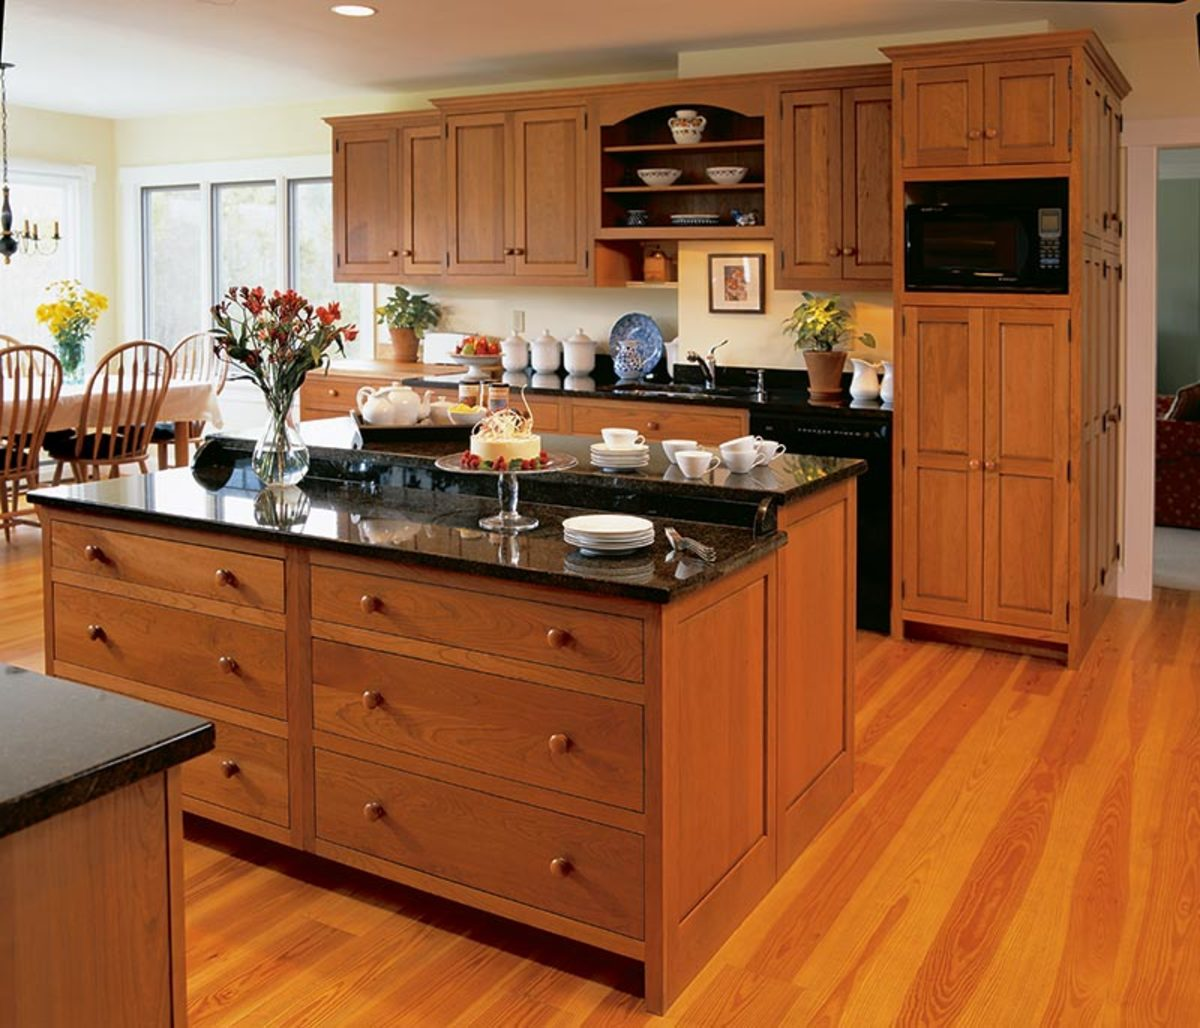 The Classic: Traditional Kitchen Cabinets - Classic Homes Design and ...